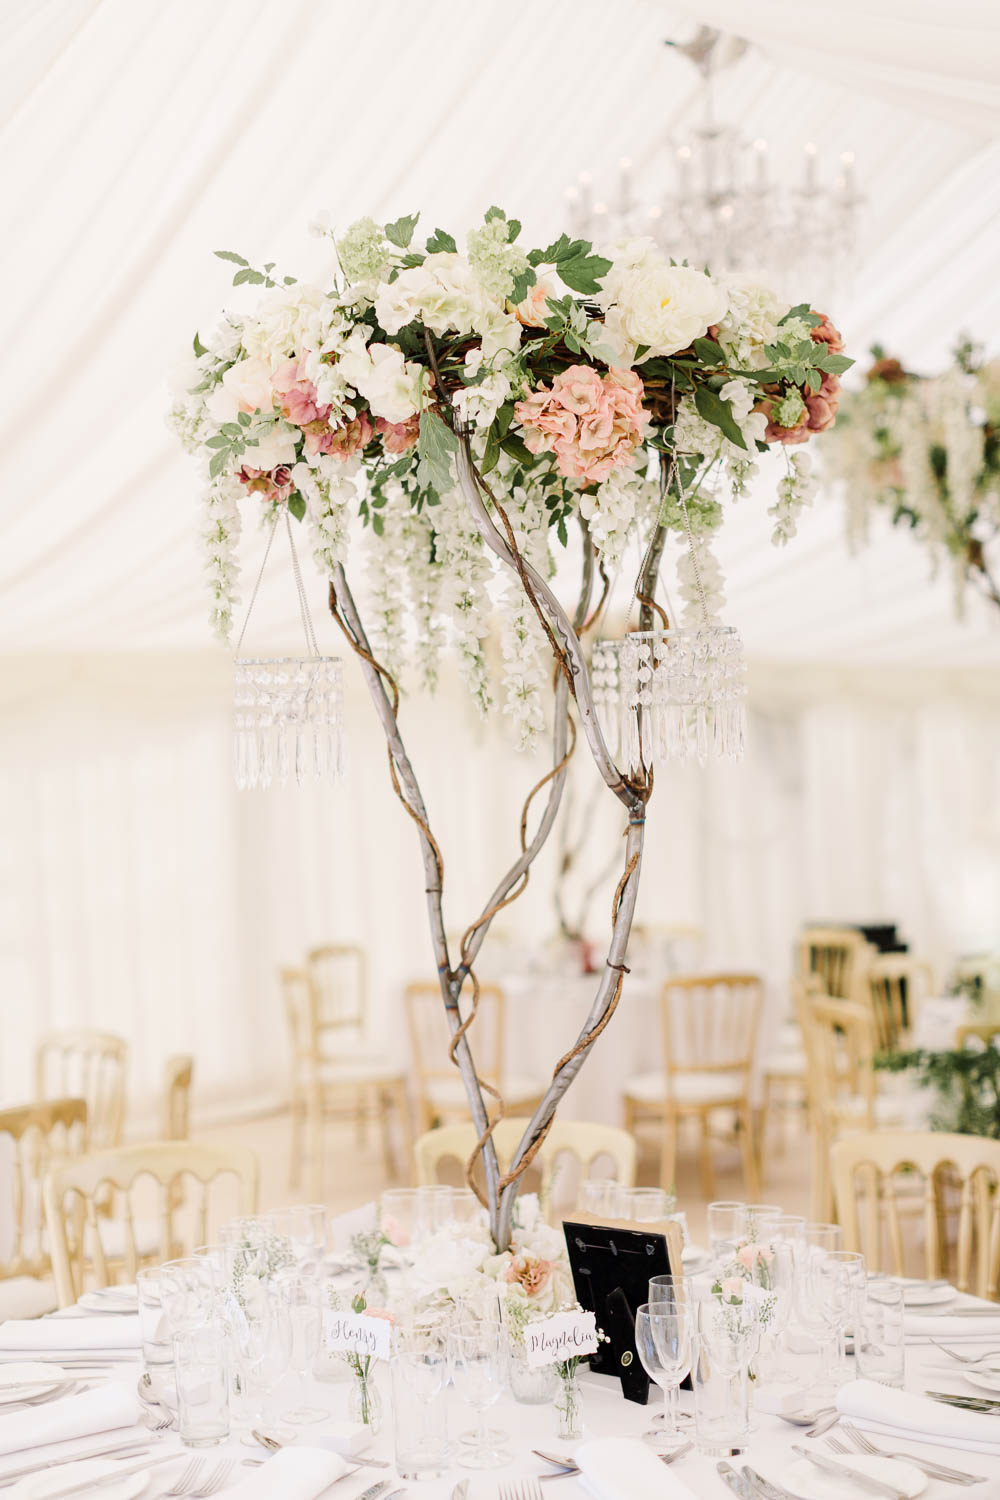 Blossom Tree Floral Chandelier Centrepiece Brewerstreet Farmhouse Wedding Danielle Smith Photography